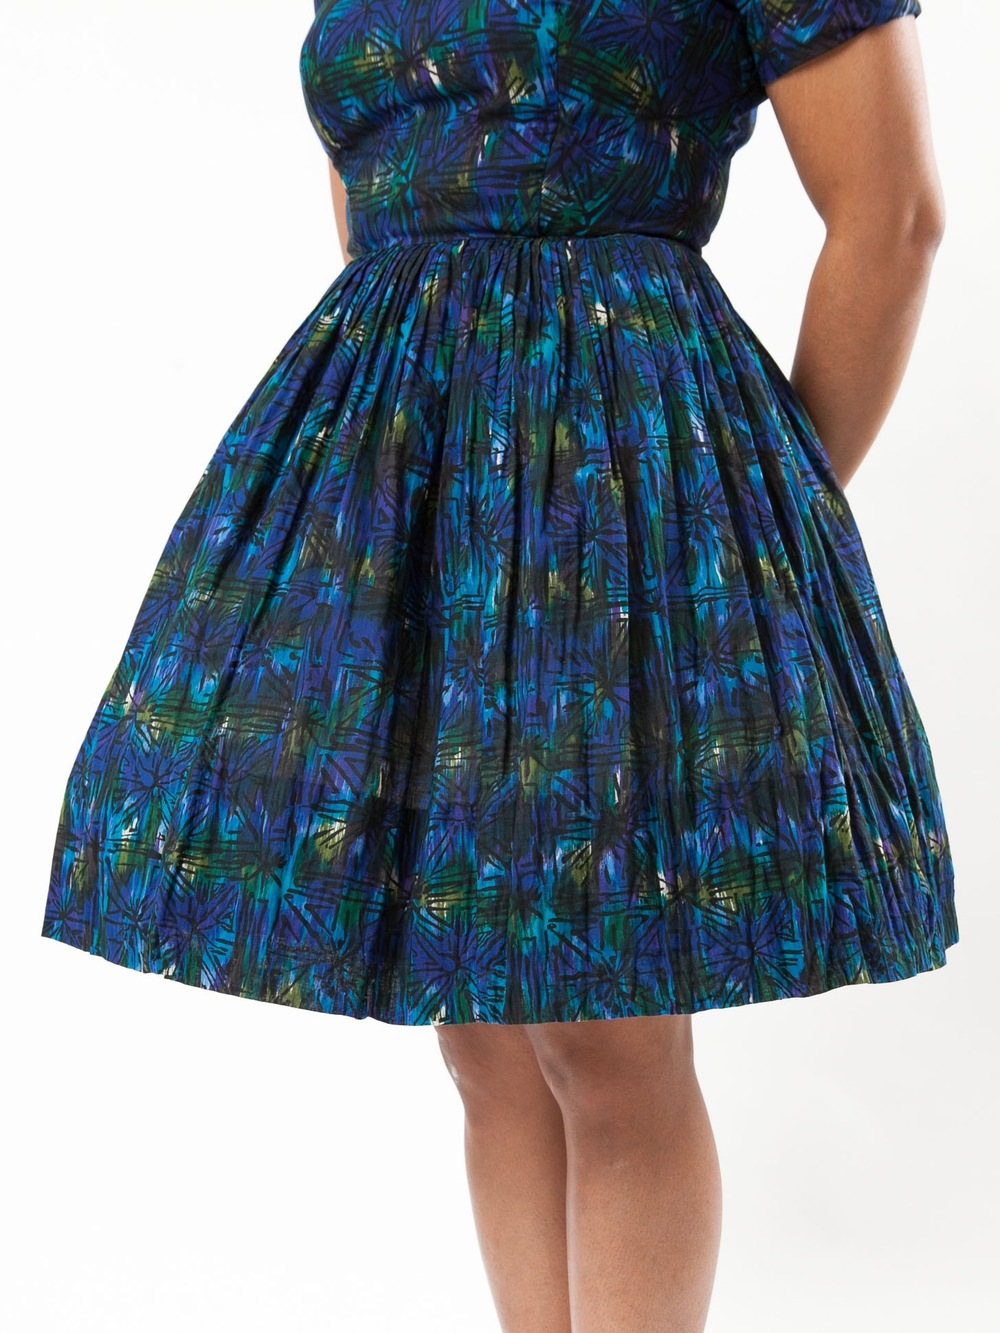 50s dress_devora__MG_8165.jpg